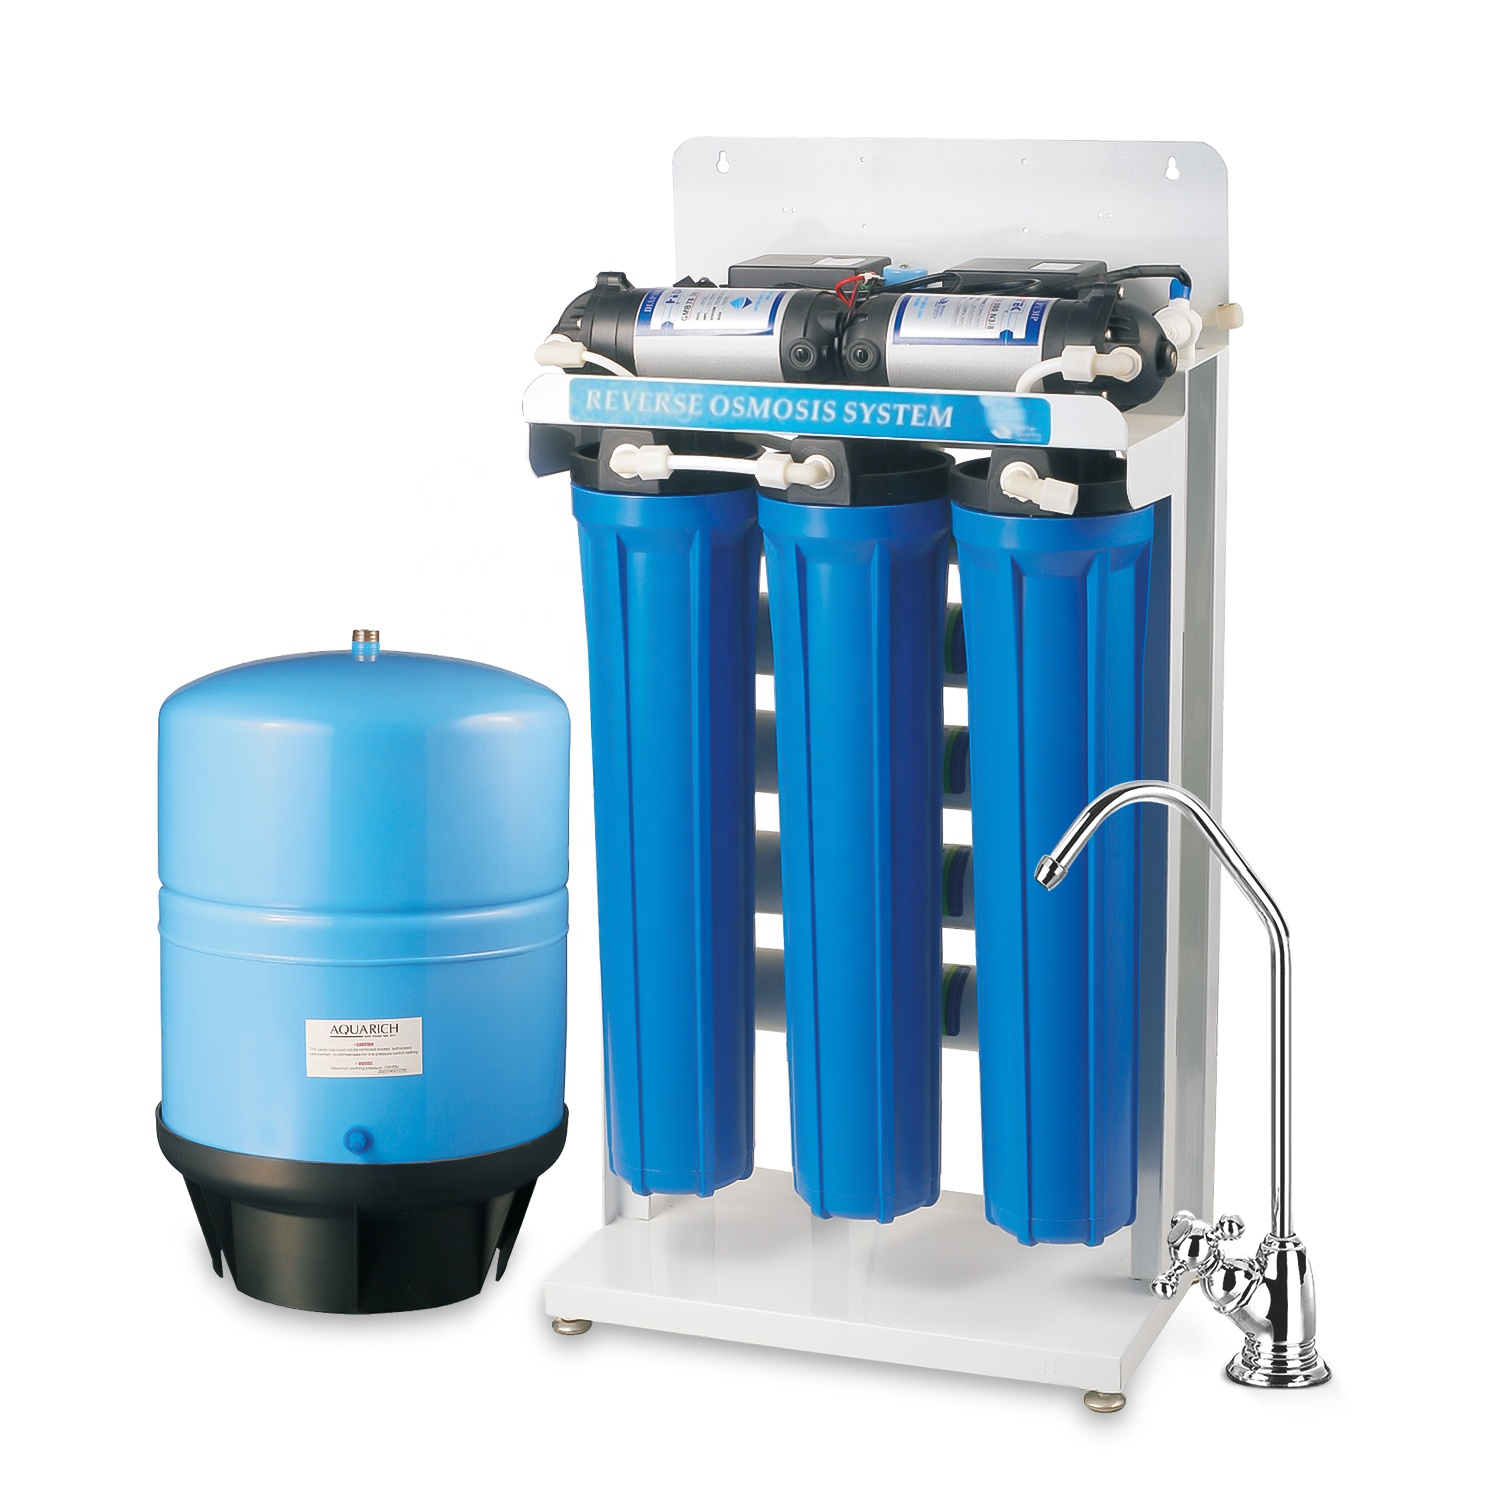 5 Stage Commercial Ro Water Filter System Purification Machine 200gpd Steel  Shelf - Buy Water Filter Machine,Water Purifier Machine For Commercial,Water  Purifier Machine Product on Alibaba.com